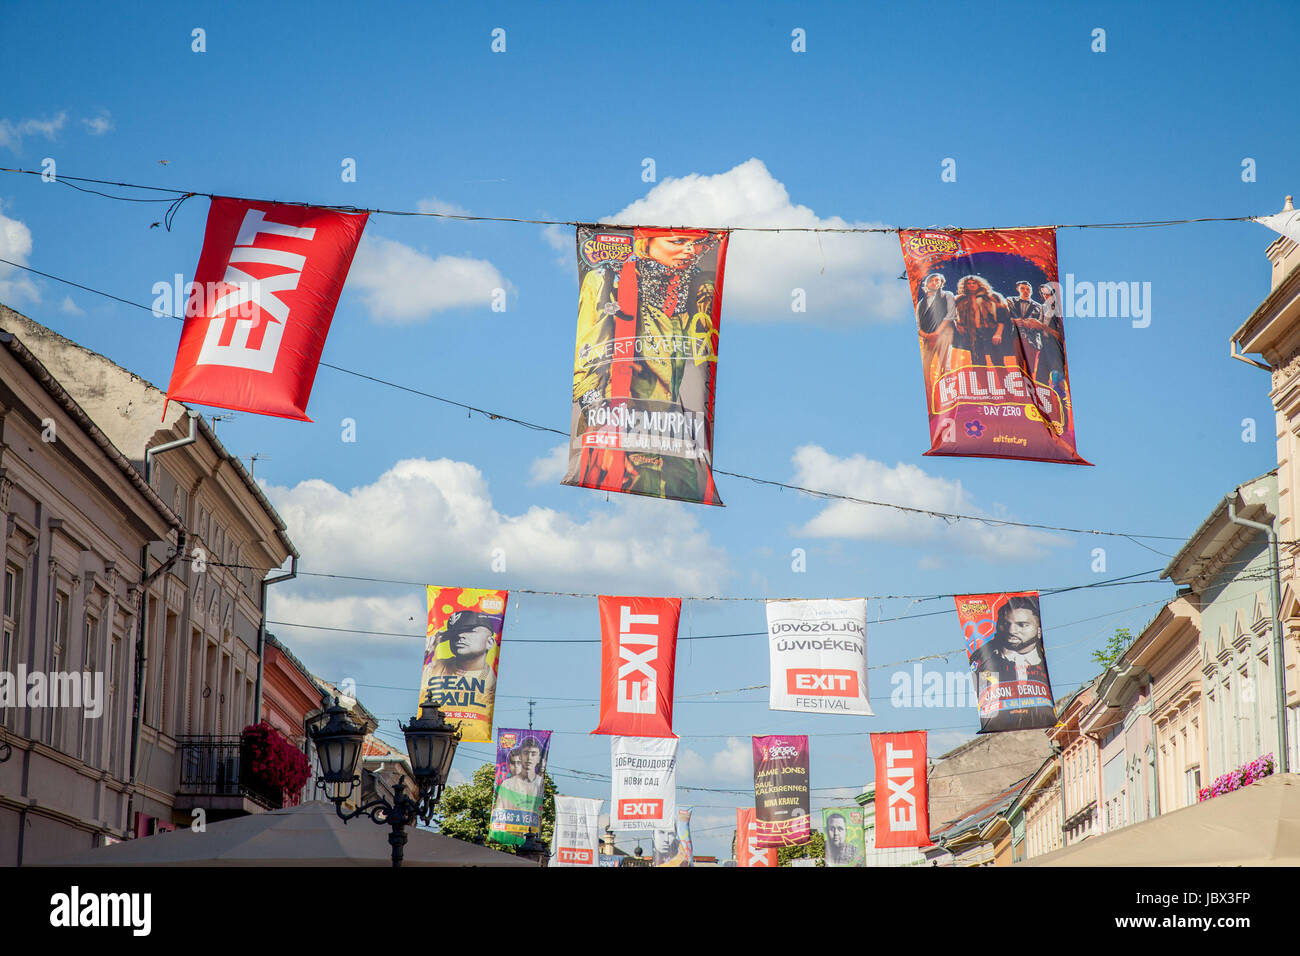 NOVI SAD, SERBIA - JUNE 11, 2017: Banners and flag in Novi Sad main streets announcing the upcoming Exit festival, - Stock Image